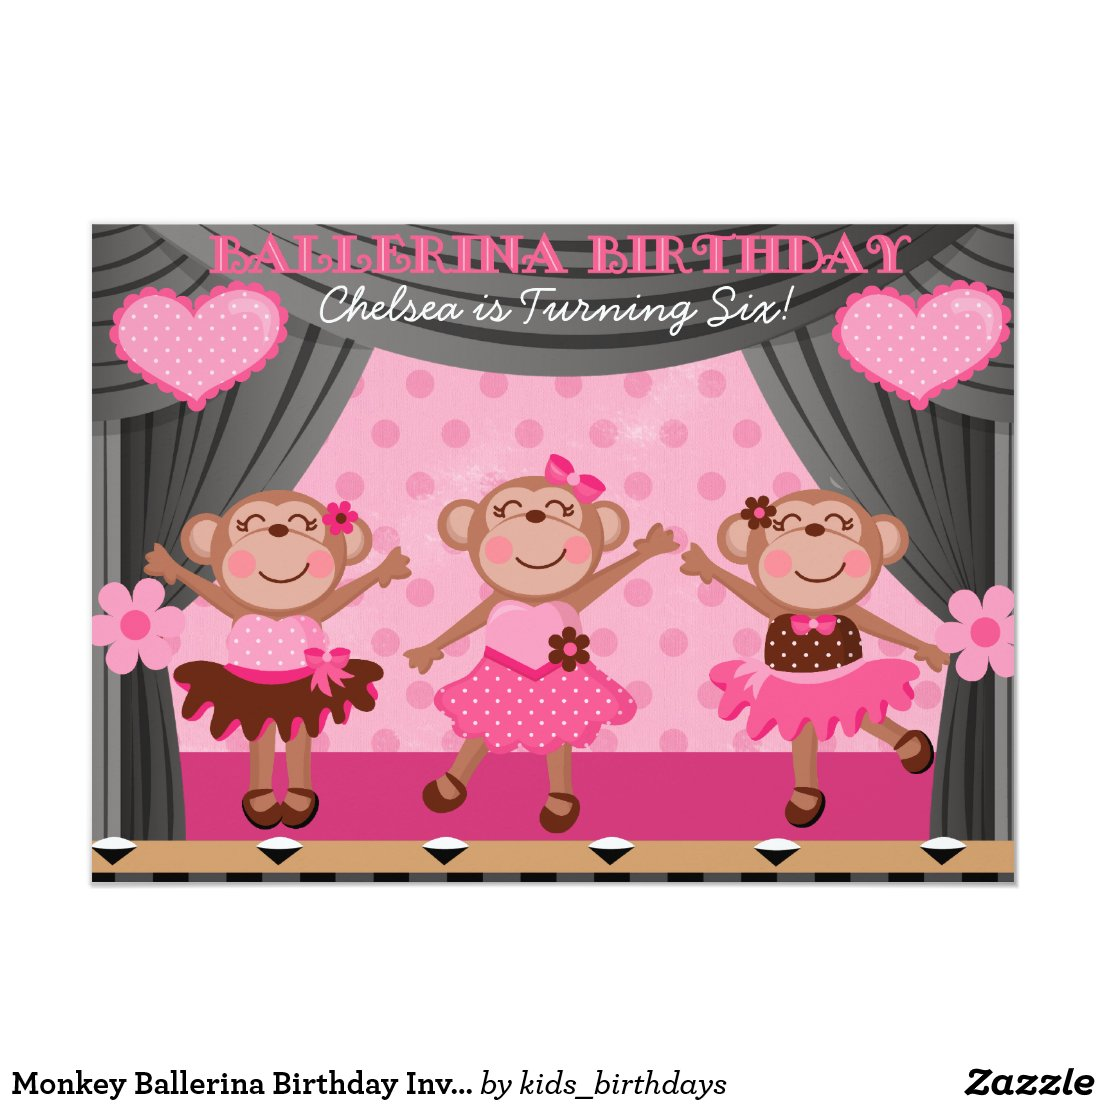 Monkey Ballerina Birthday Invitations